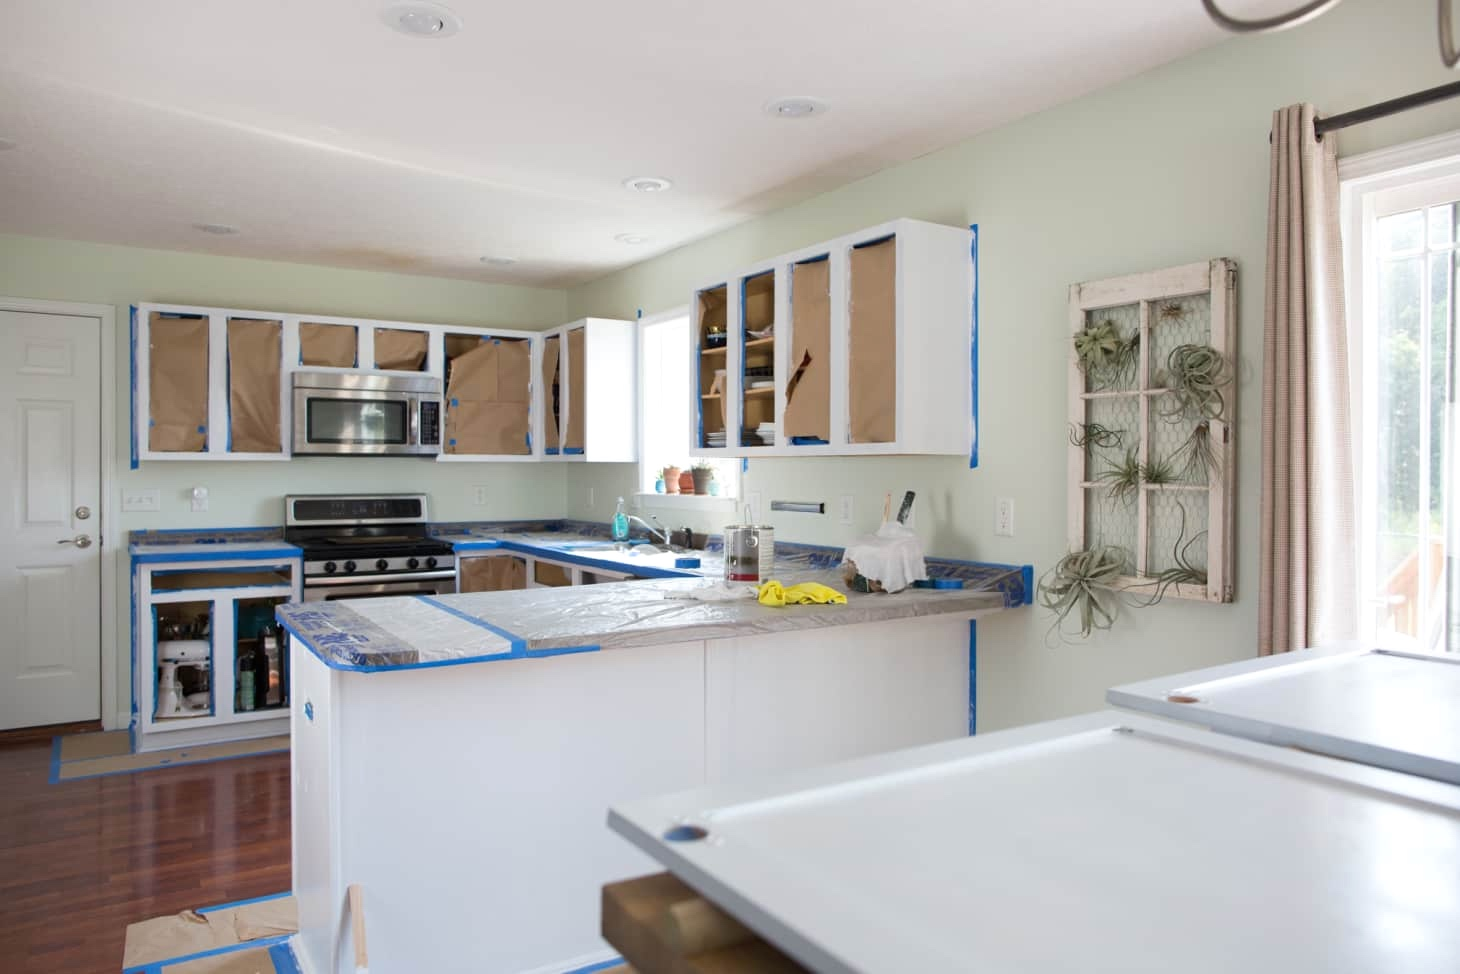 Professional Kitchen Painting - Roughneen Paint Finishes